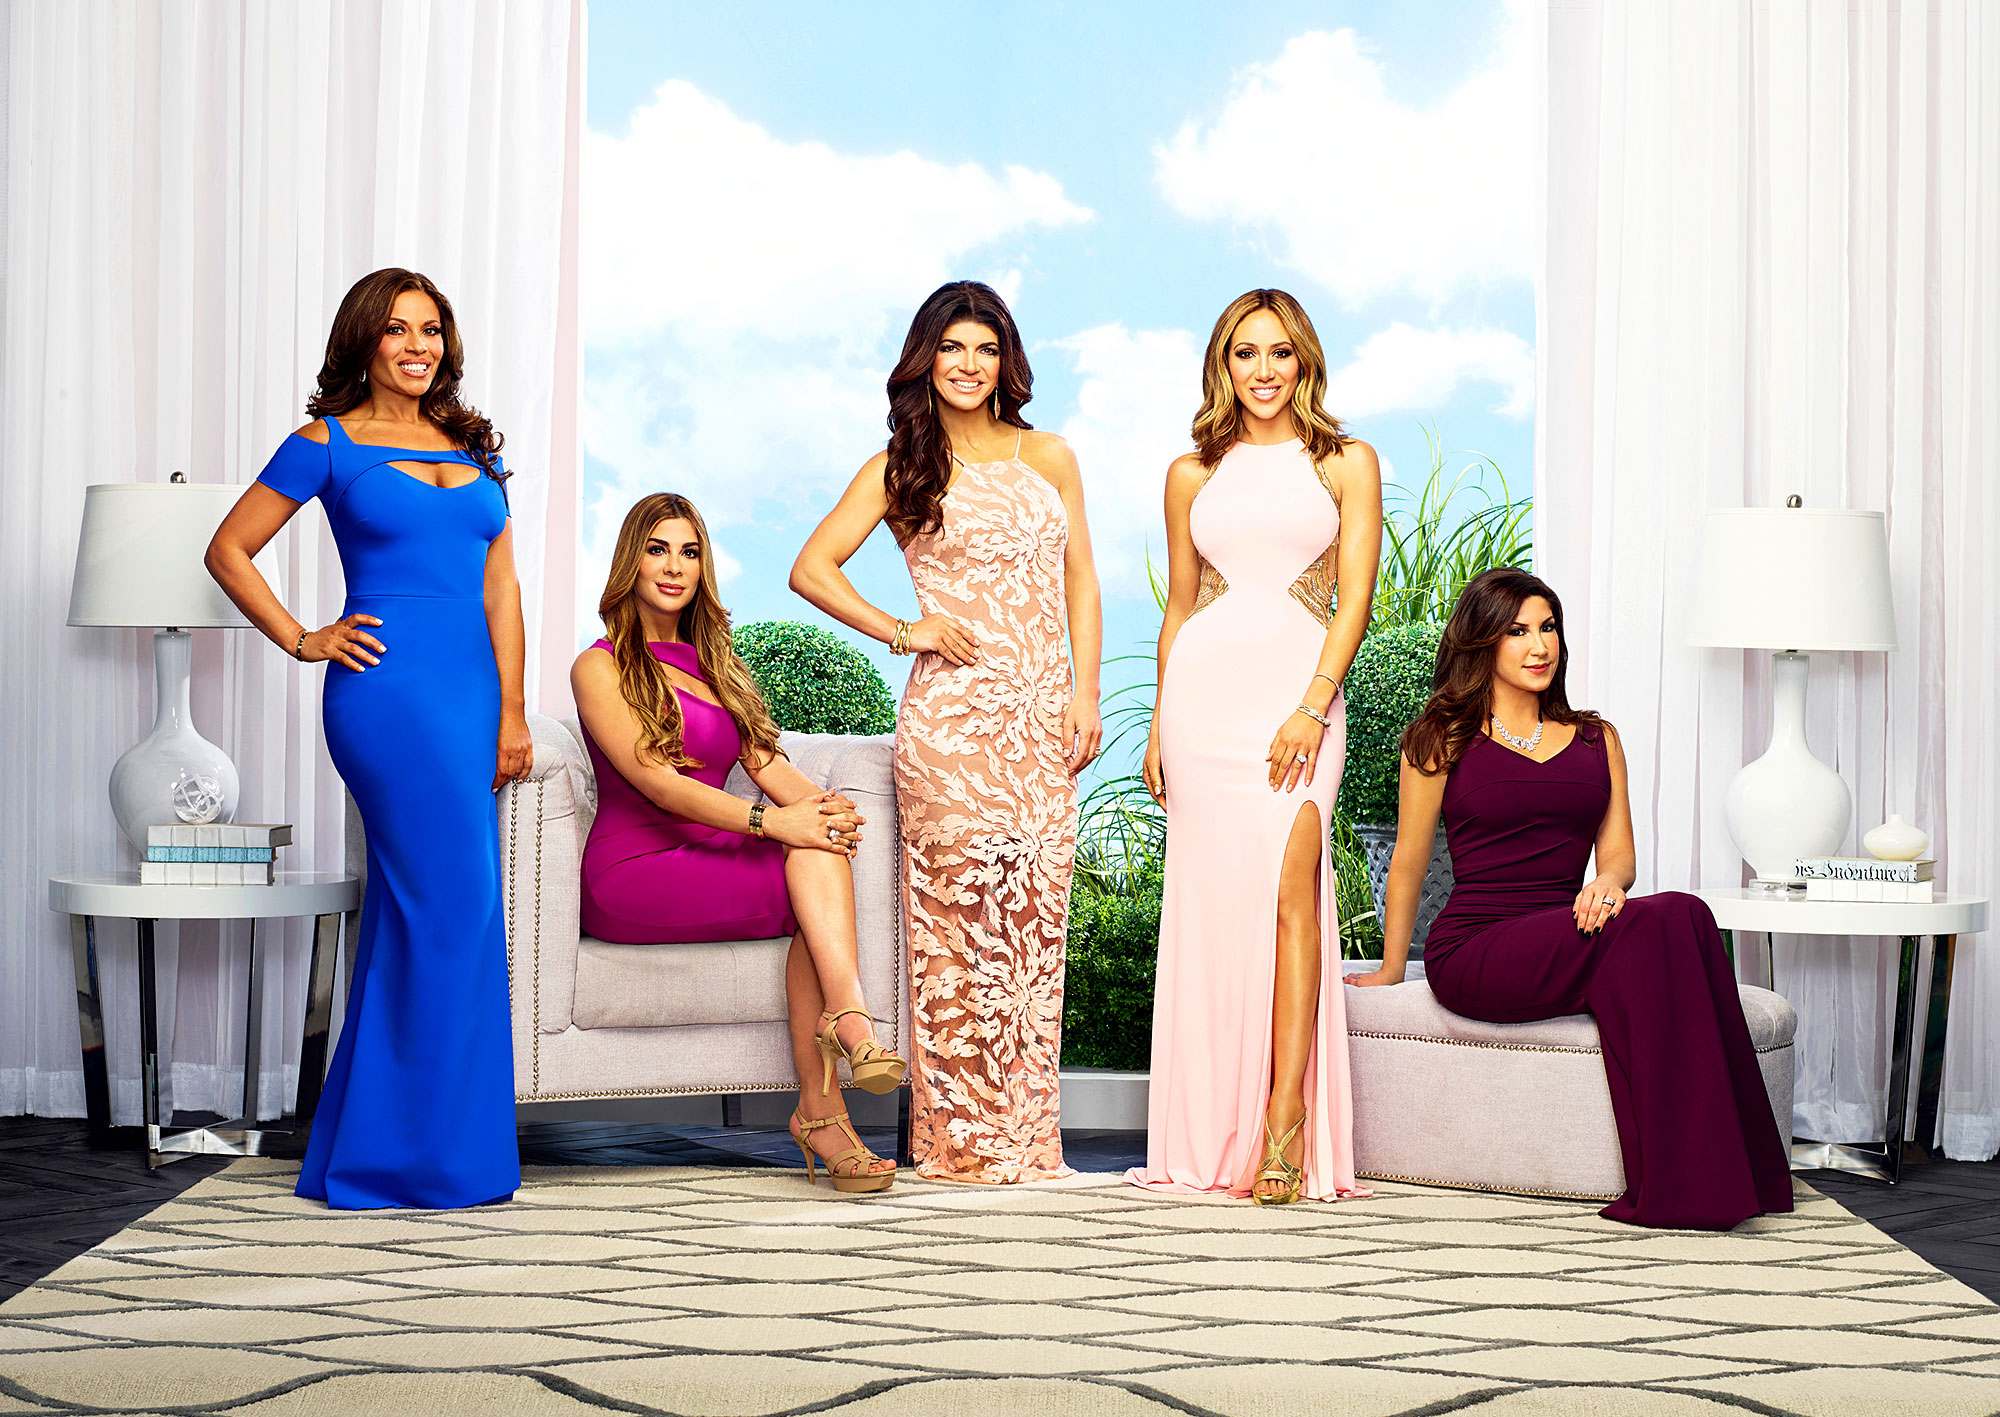 Dolores Catania, Siggy Flicker, Teresa Giudice, Melissa Gorga, Jacqueline Laurita The Real Housewives of New Jersey